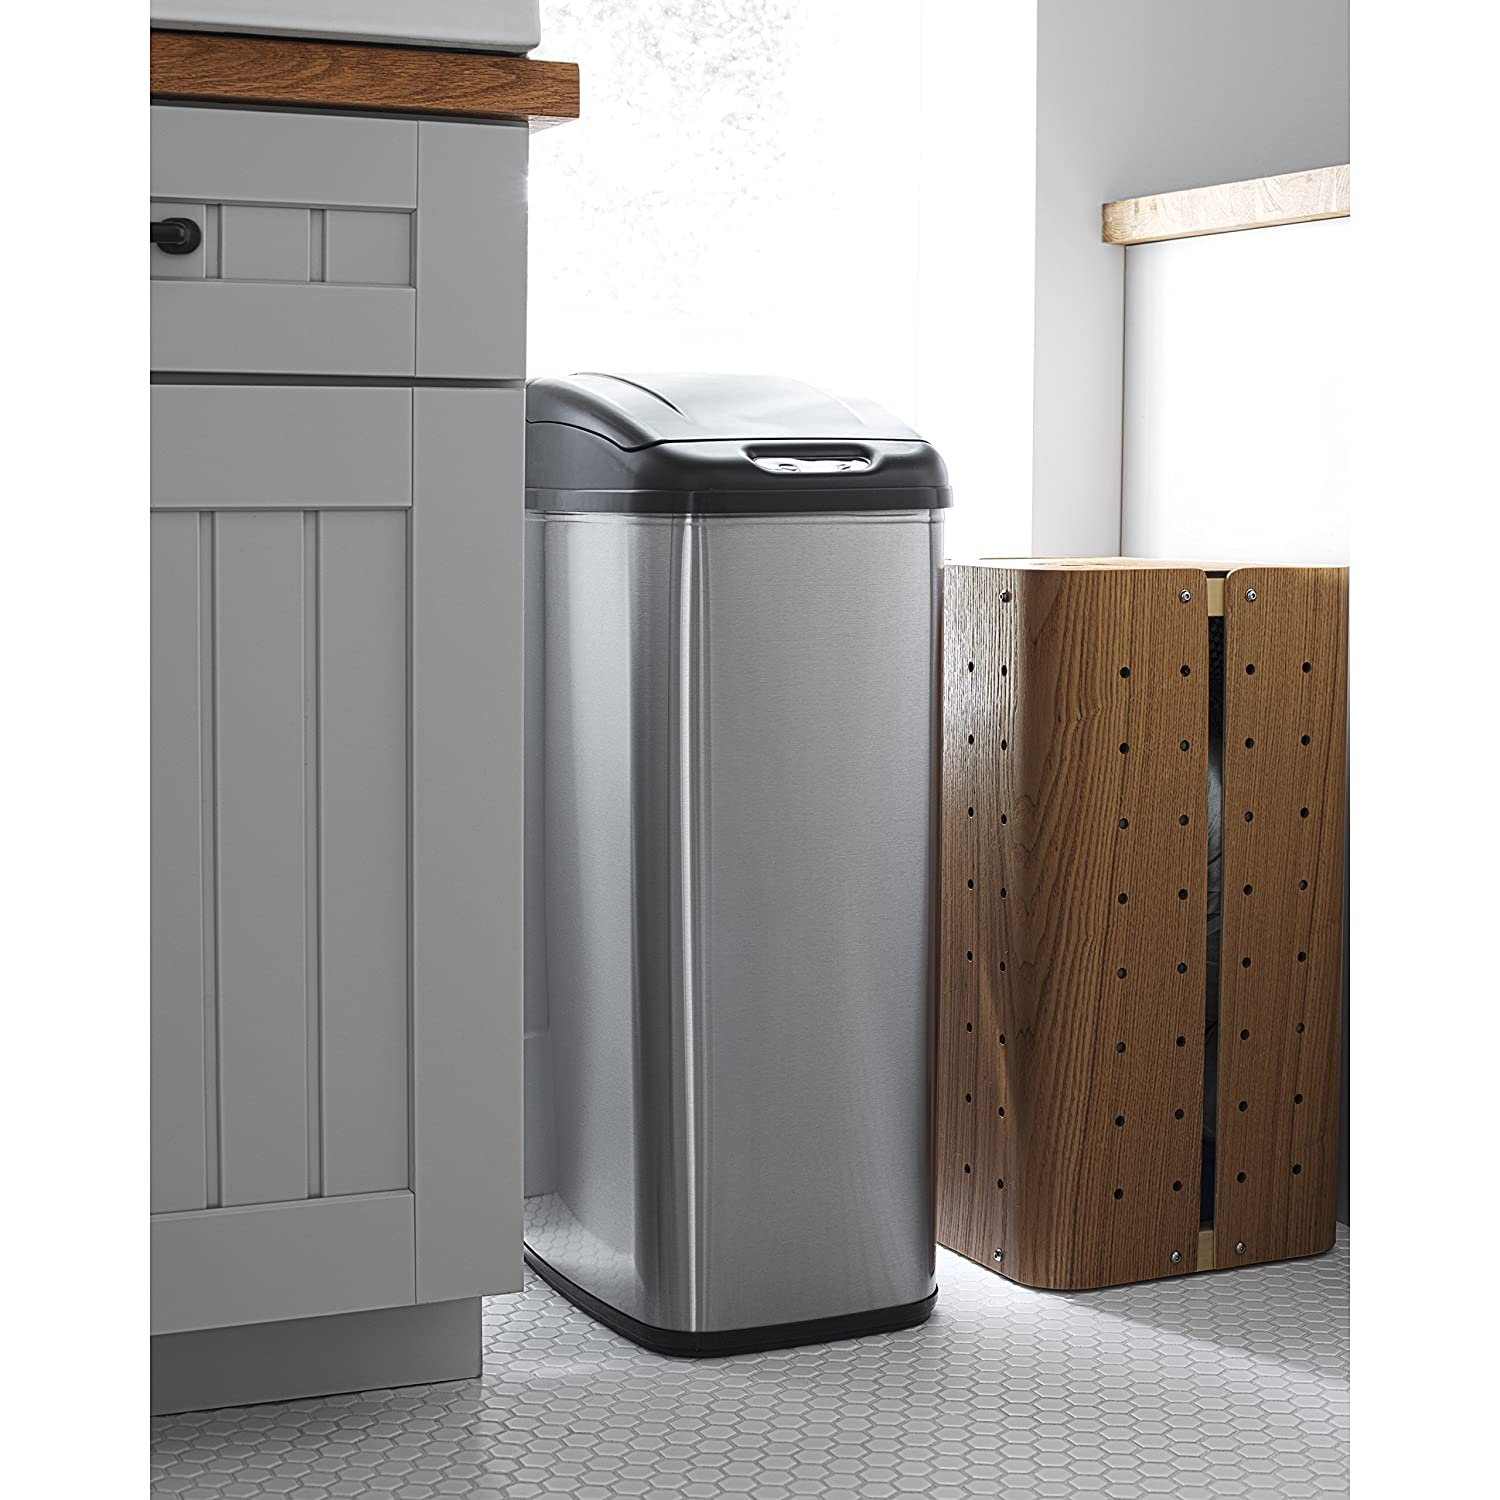 NINESTARS DZT-30-1 The Original Touchless Automatic Motion Sensor Trash Can // 30 L. 7.9 Gal Stainless Steel